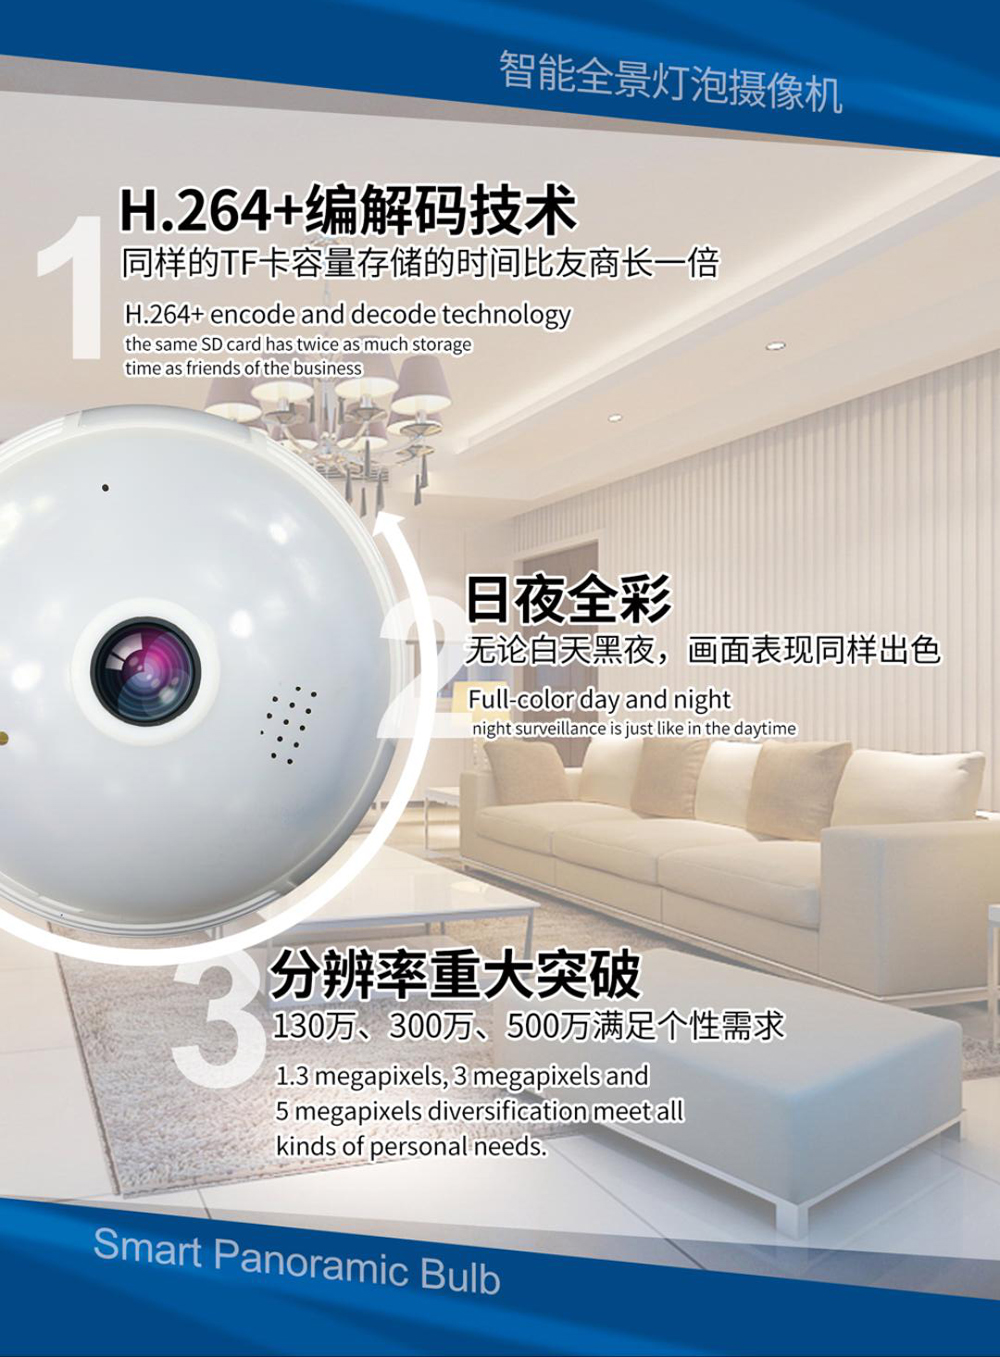 b  Three Array Led 128G 960P 1.3mp 360 Degree Fisheye 3D VR Panoramic Bulb Wifi Wireless IP CCTV Surveillance Camera Free Shipping HTB13SxqX0LO8KJjSZPcq6yV0FXax